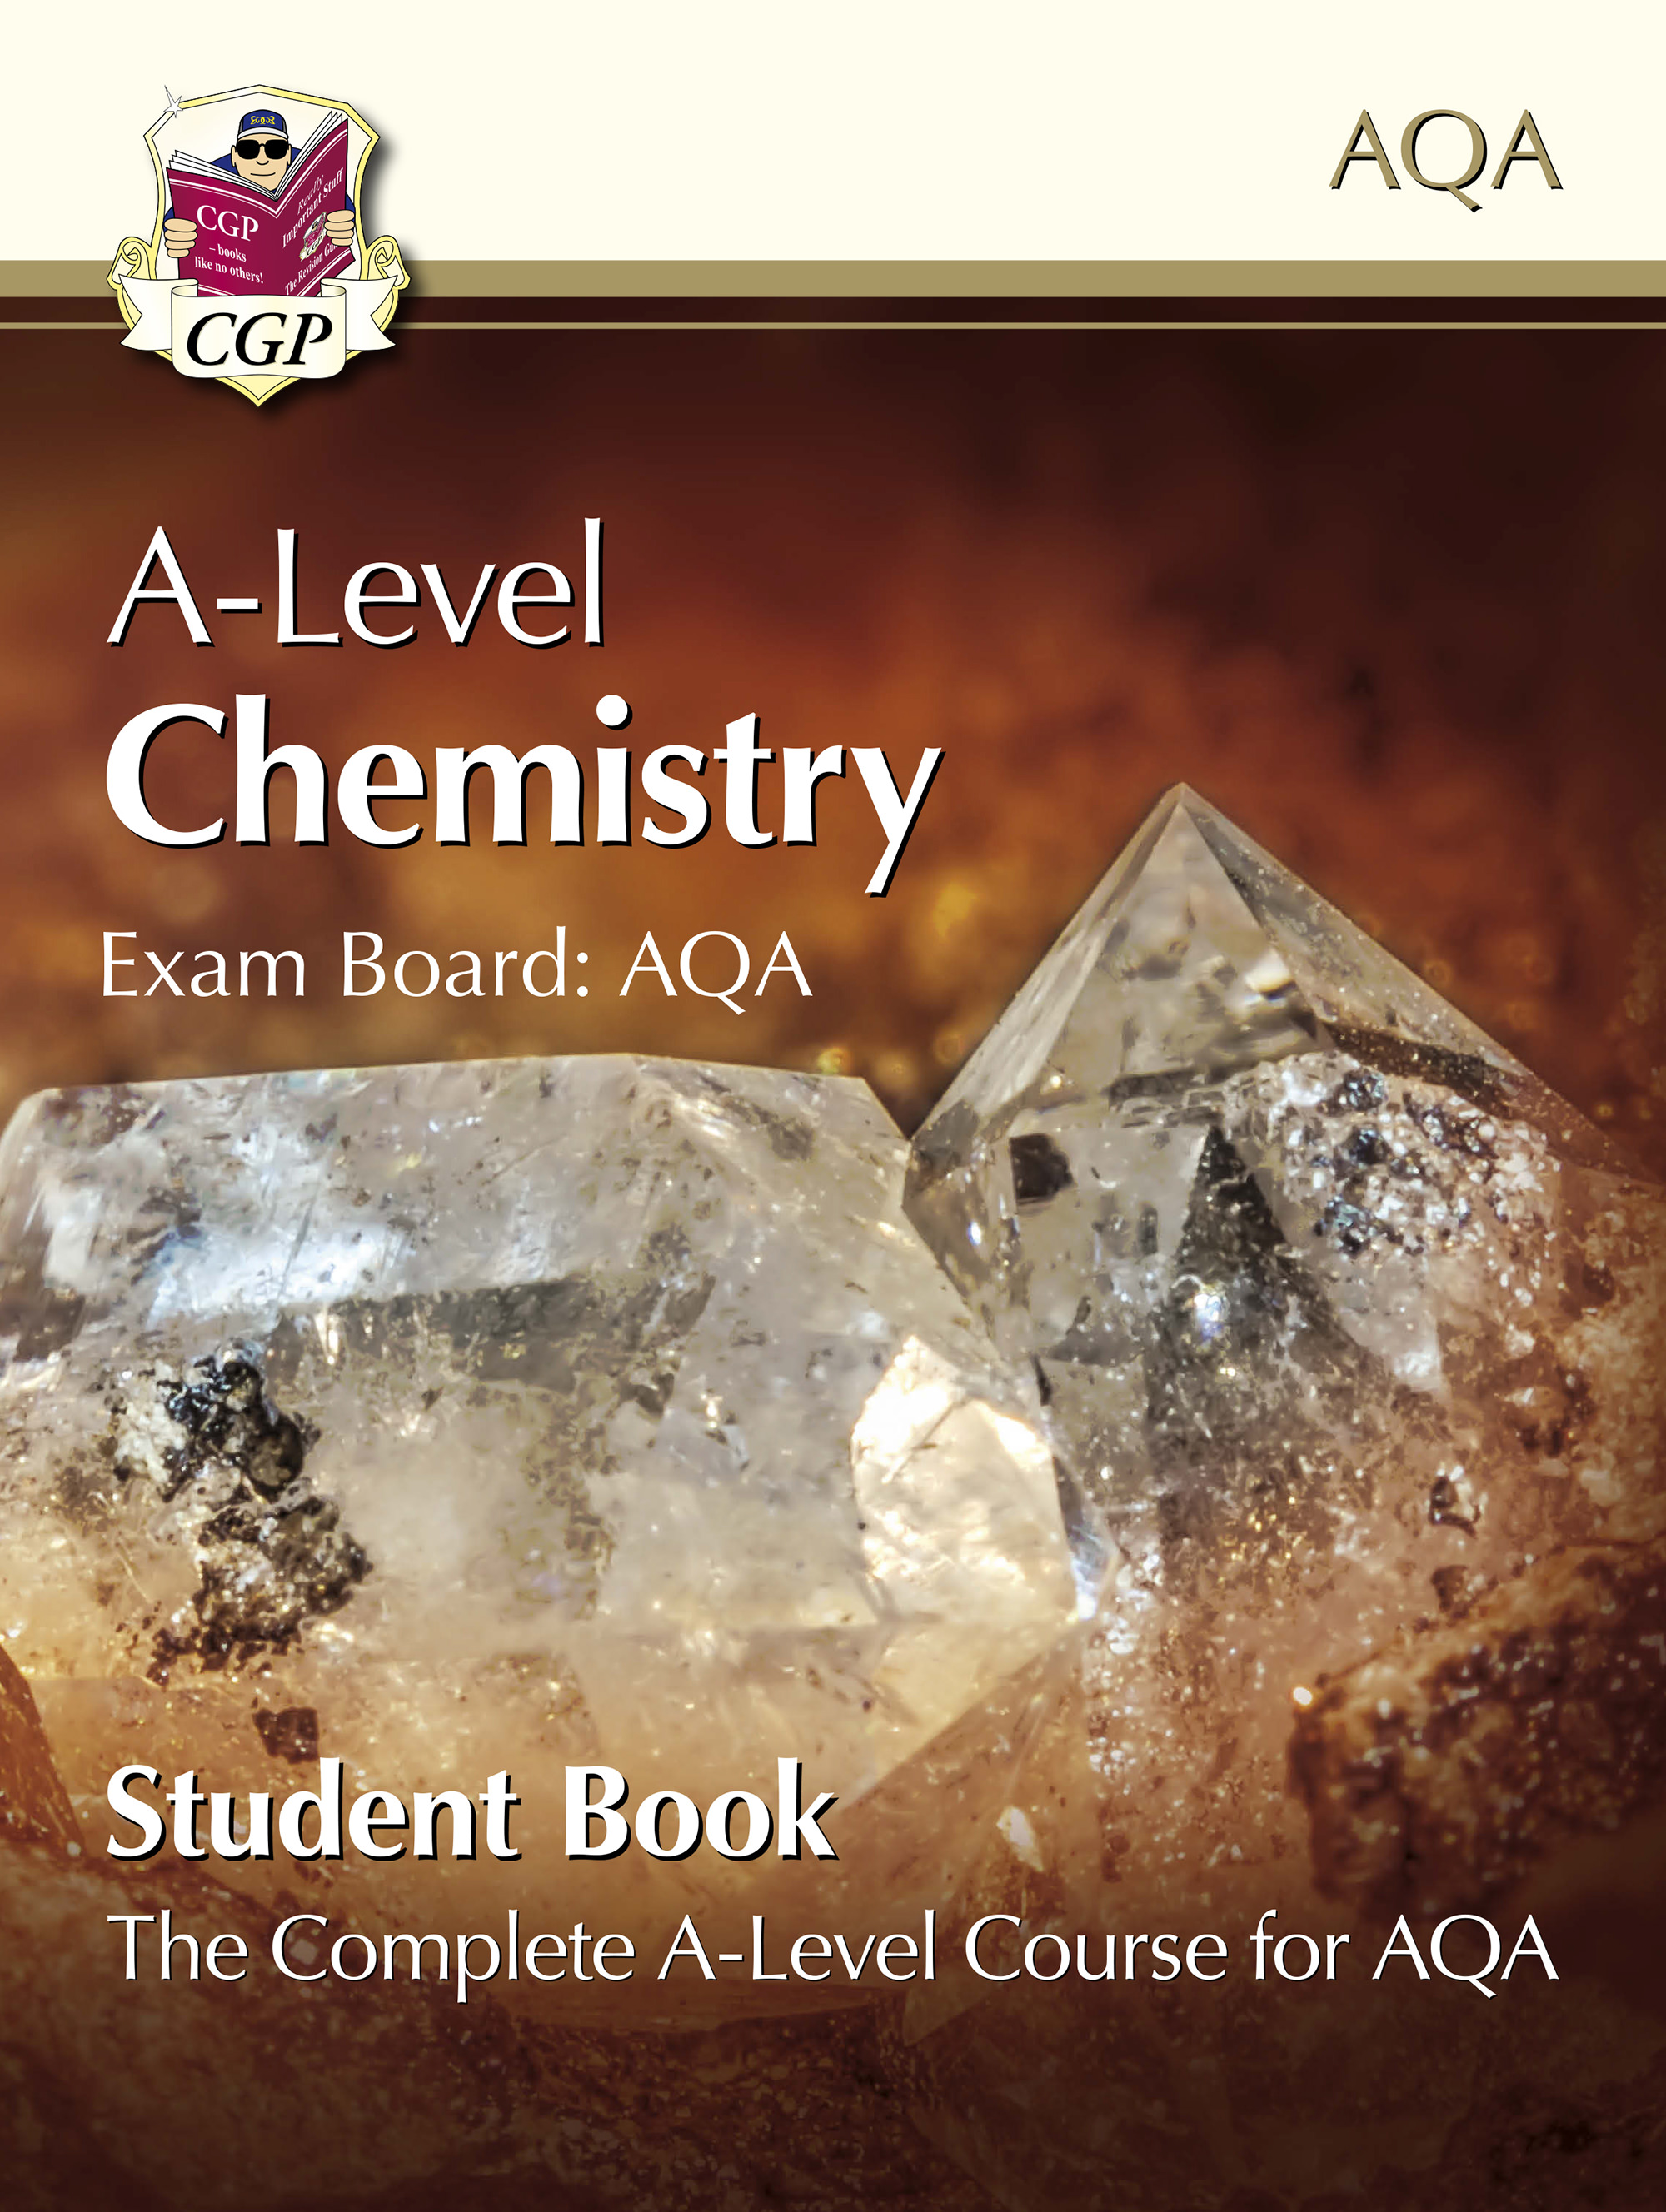 CATB72DK - New A-Level Chemistry for AQA: Year 1 & 2 Student Book